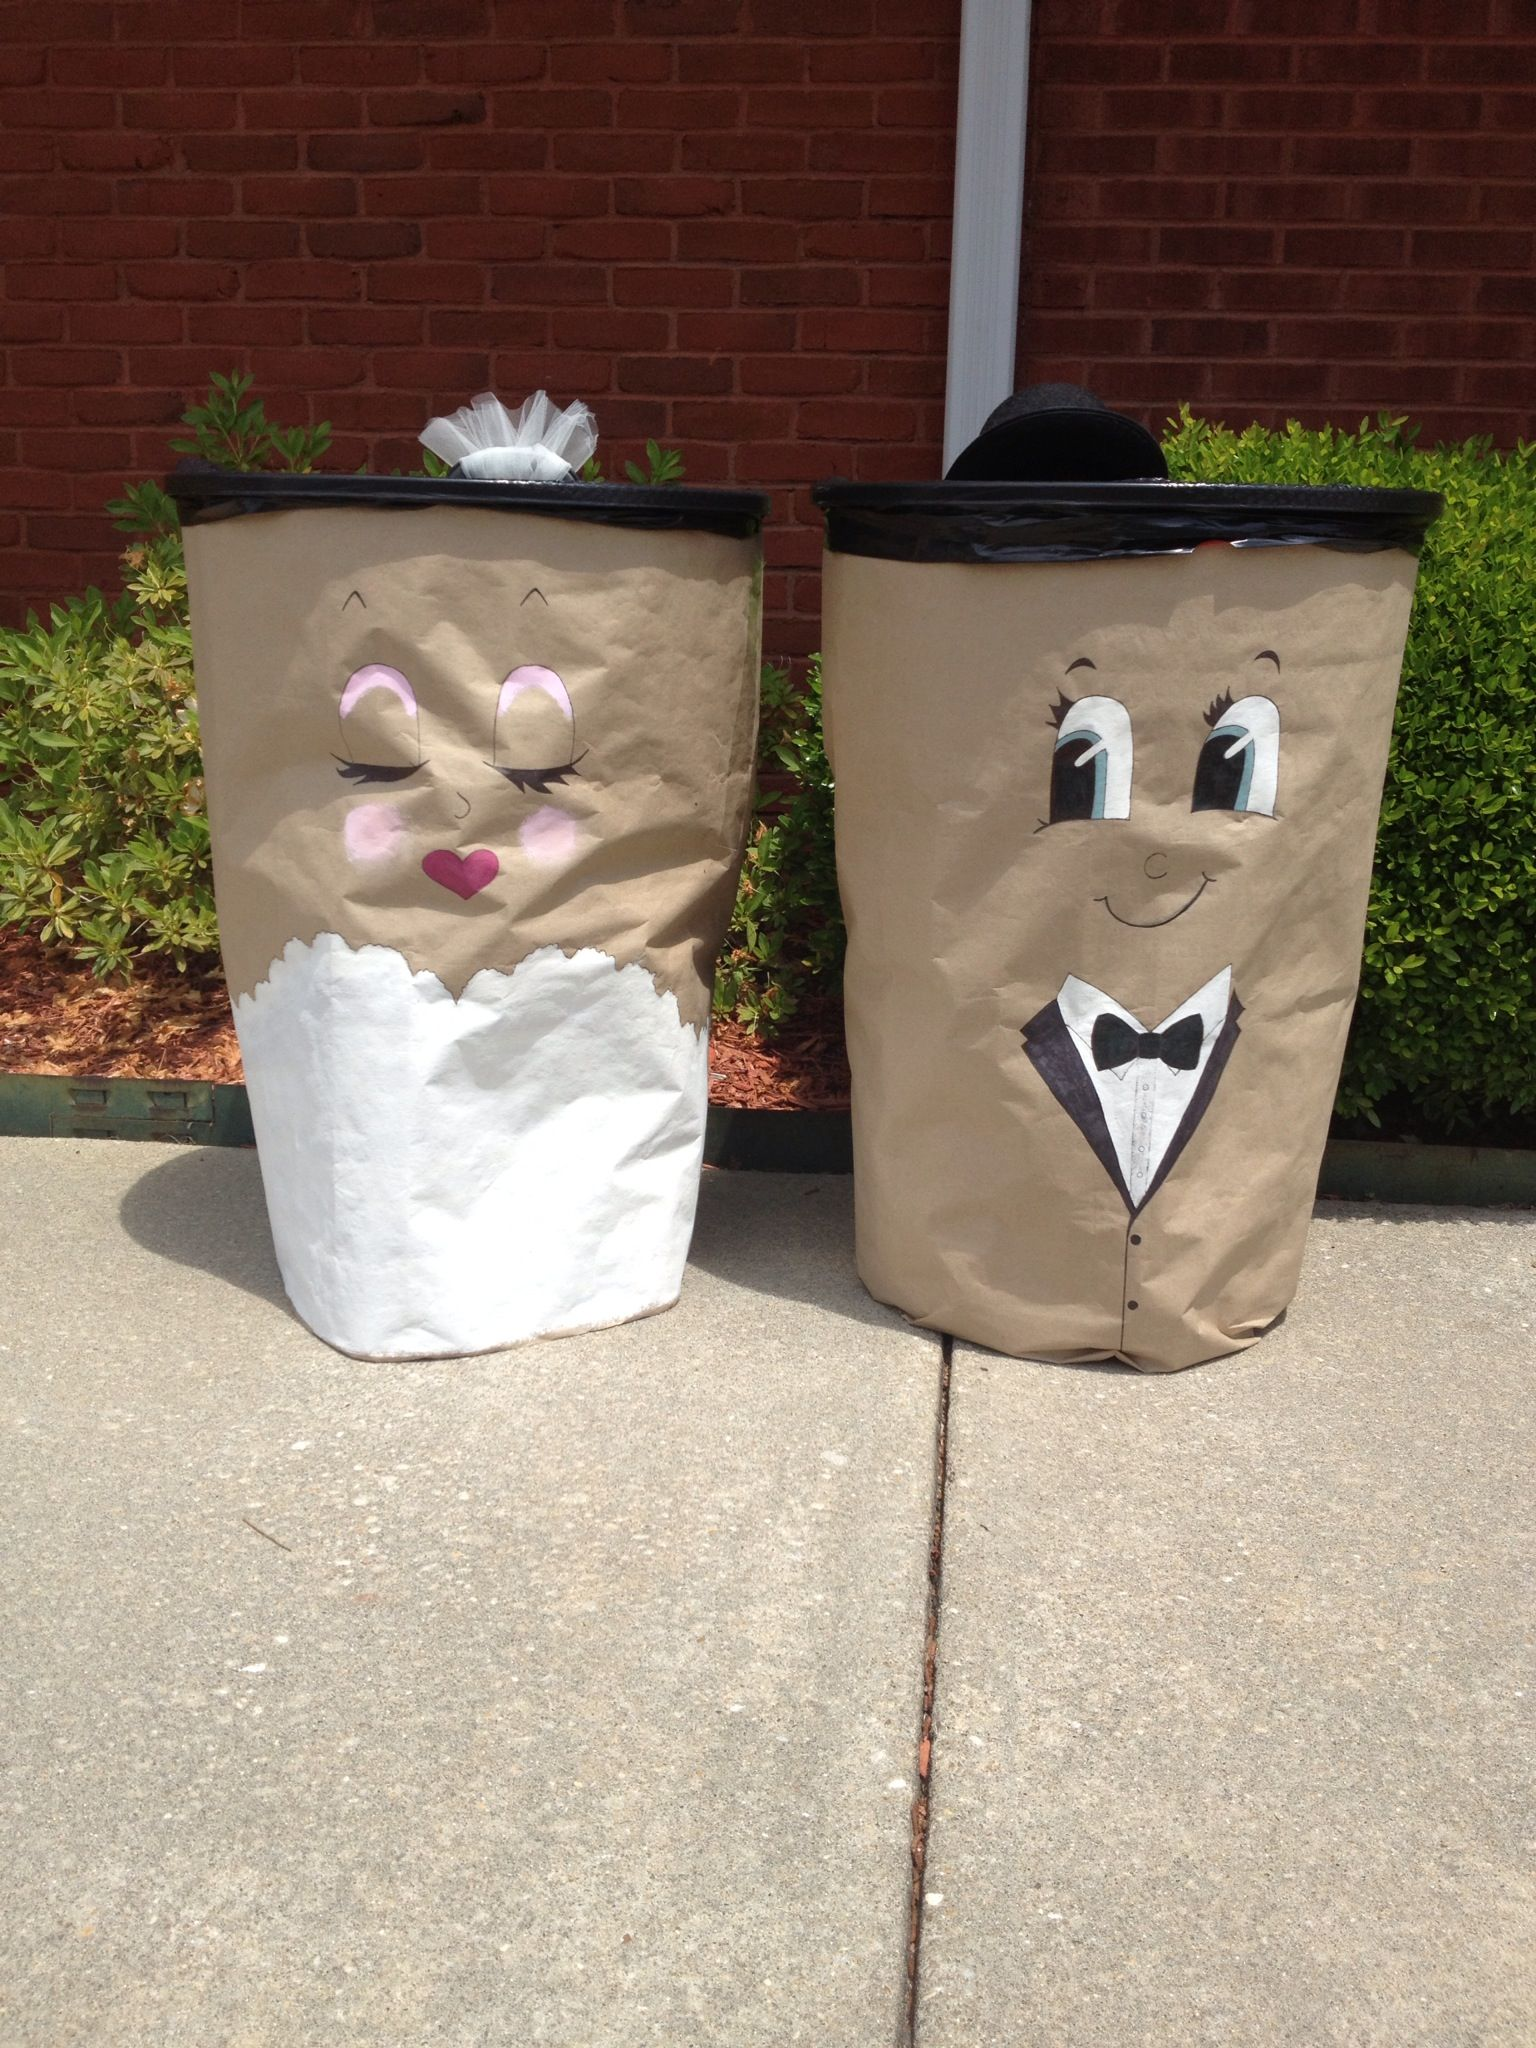 Cute Garbage Cans The Wedding Pinterest Kids Rooms